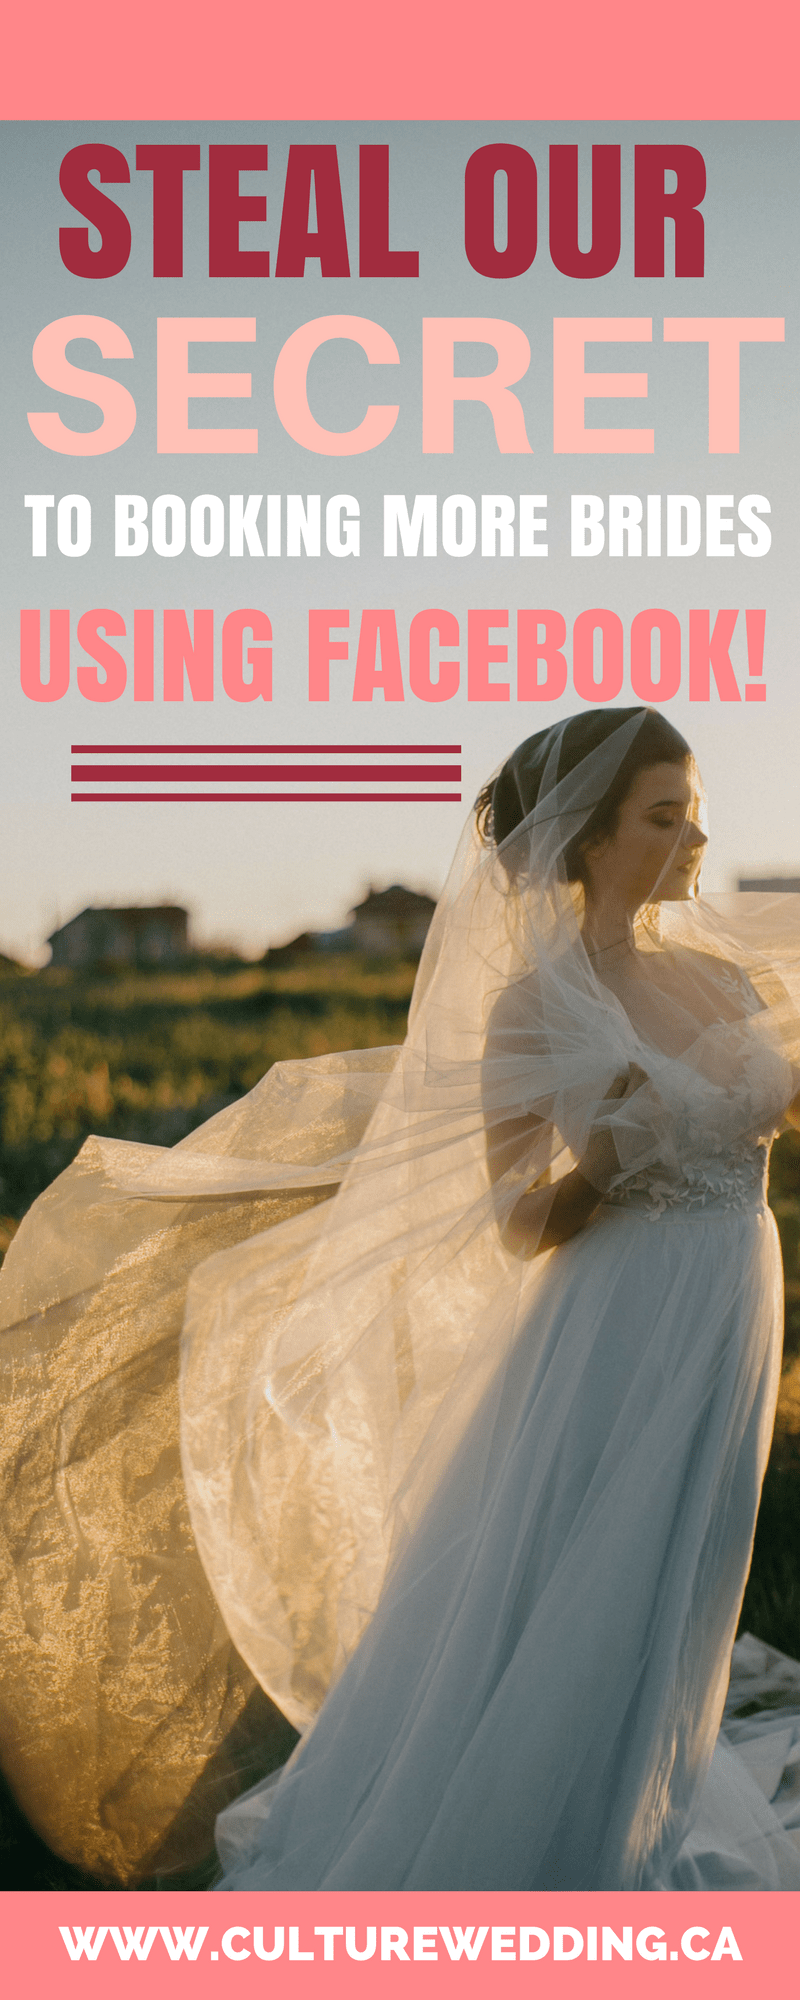 Booking brides using Facebook. book more wedding clients. Start & Run an Event Planning Business shows you how to start and run a successful enterprise by planning. Event planning business. How to start a successful Event Planning business. How to market your wedding planning business to book more weddings.